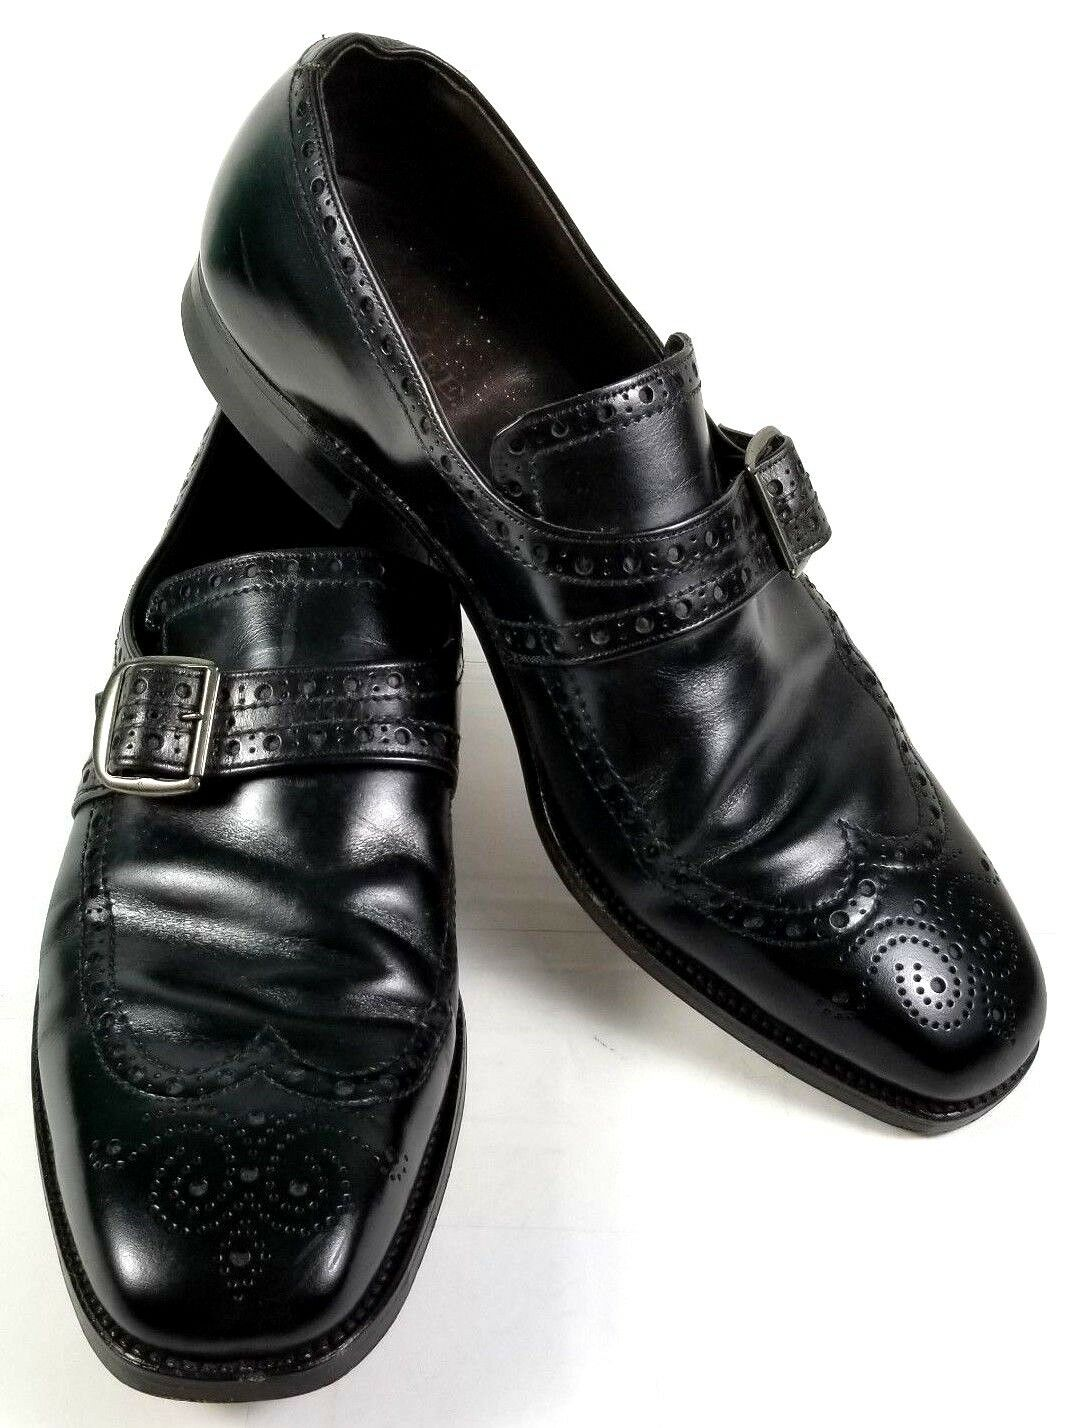 Roblee Mens Dress shoes Loafers Size 11C Black Wingtip Monk Strap Leather